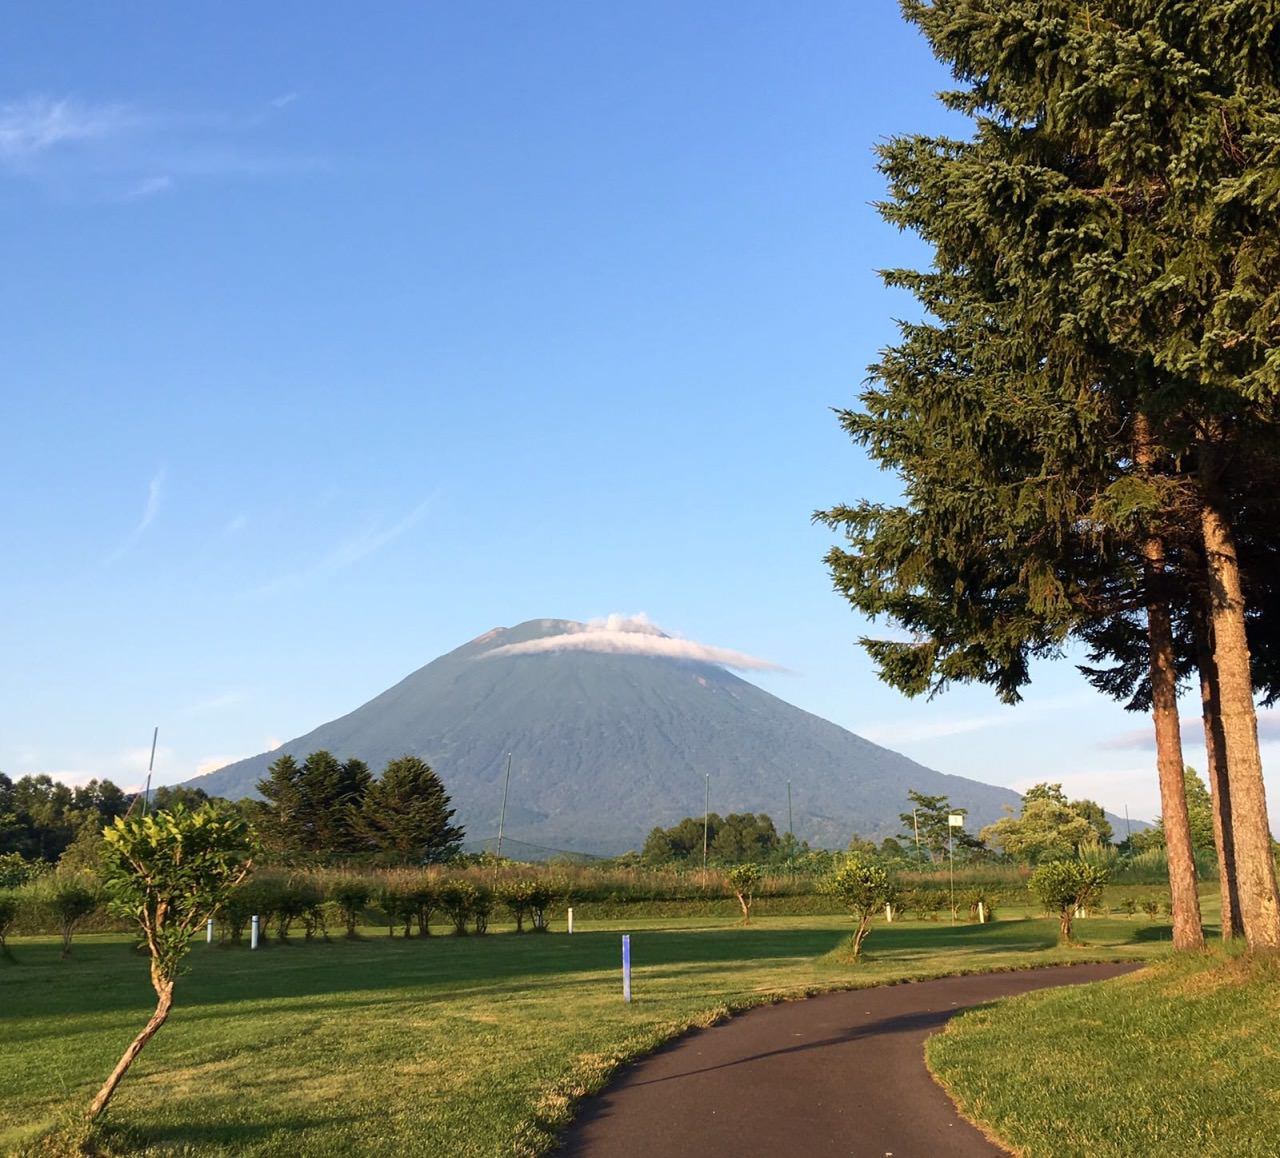 A captivating view for those who enjoy nature. Don't miss this spot while you're driving in Niseko!